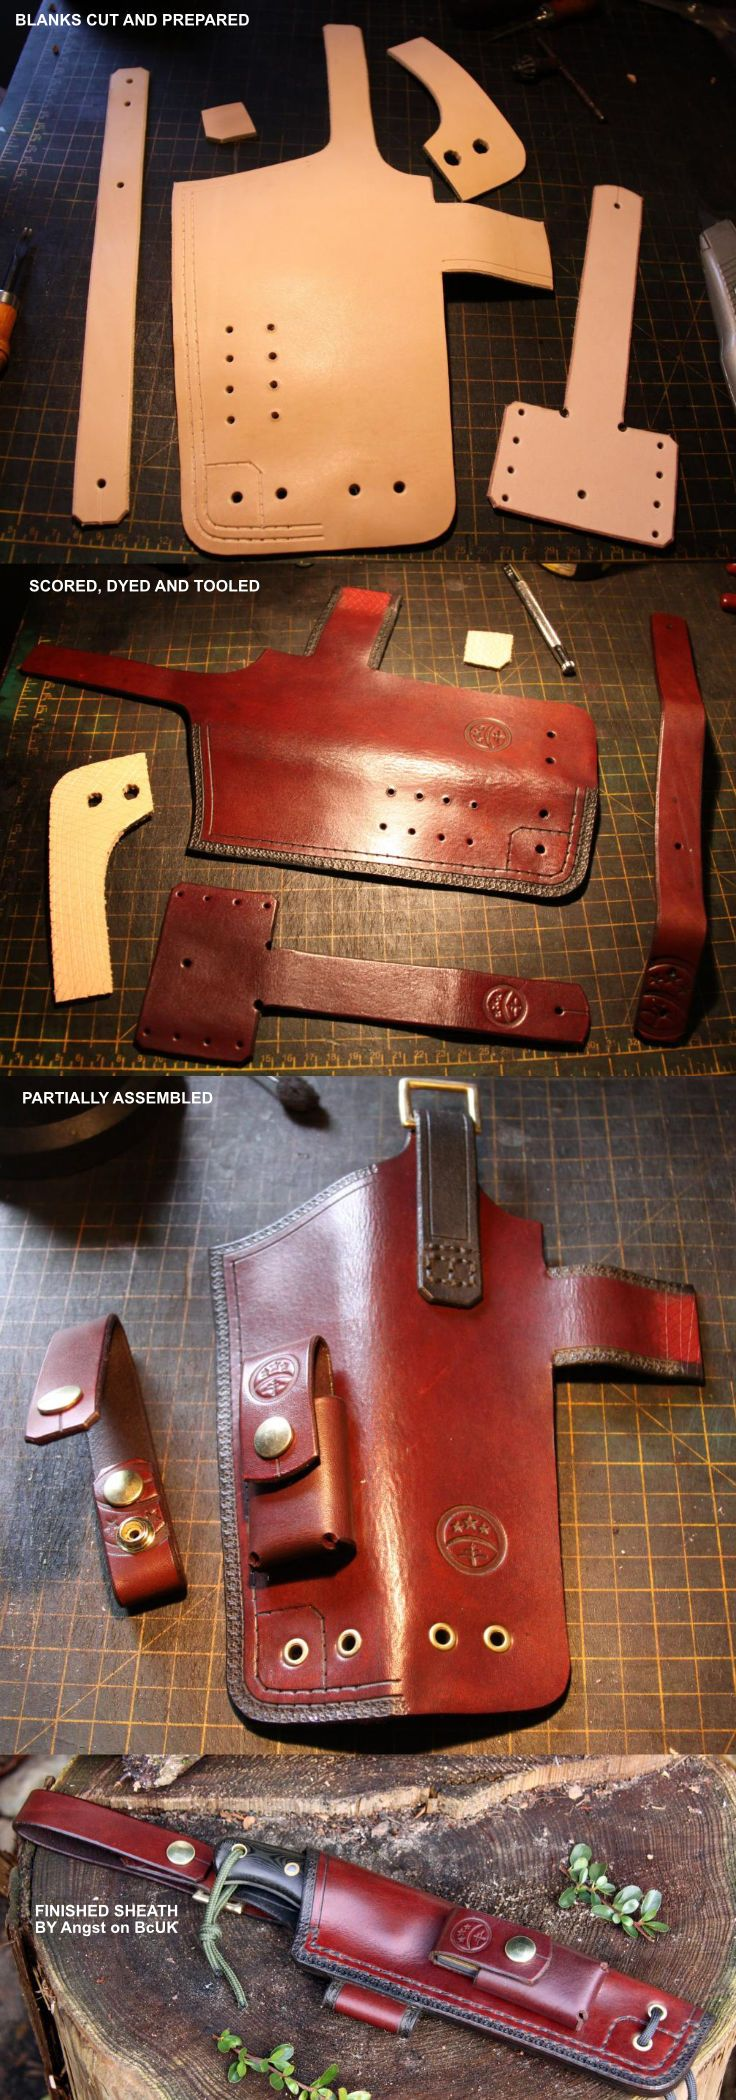 Custom Sheath by Sonni - a few of the construction stages https://www.etsy.com/listing/475473093/custom-fixed-blade-knife-handmade-sheath?ref=shop_home_active_16